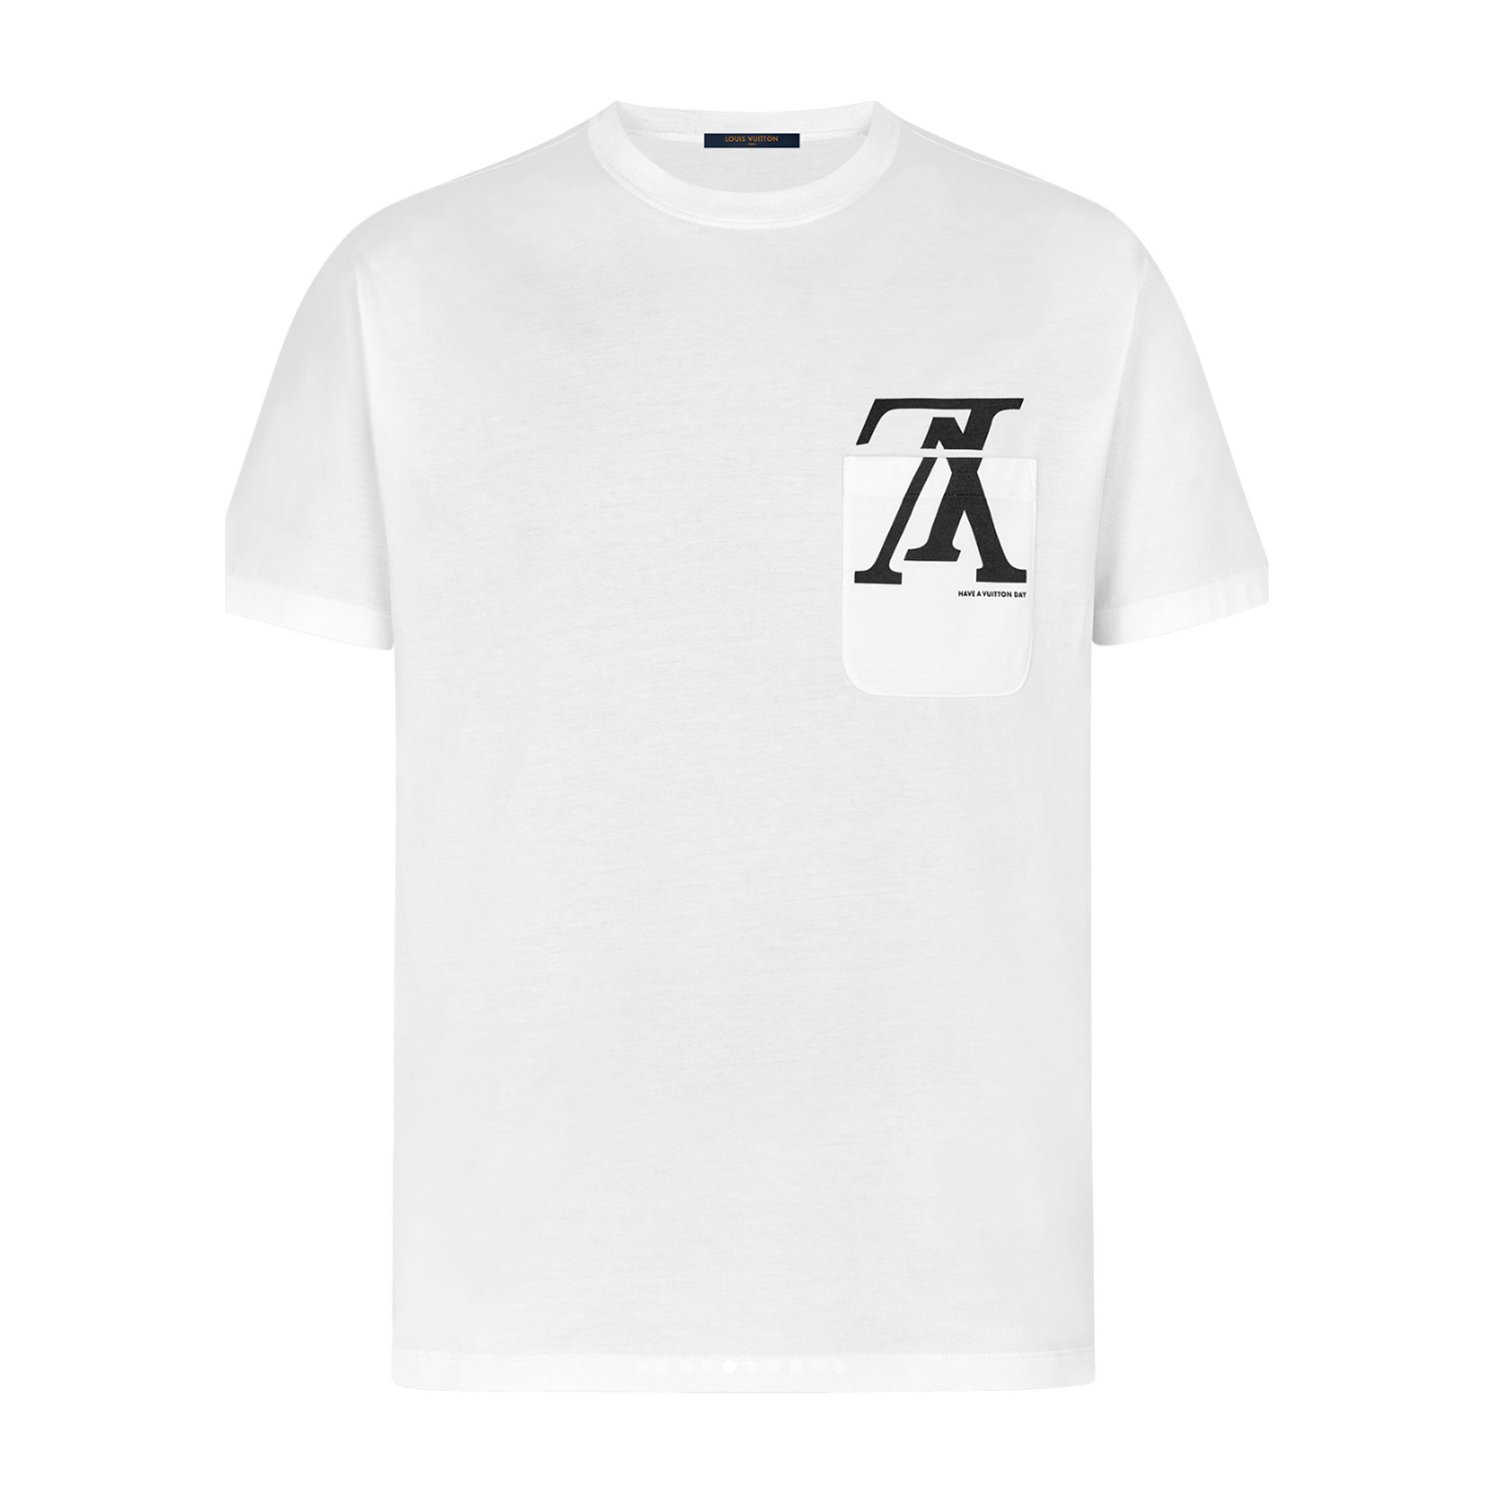 UPSIDE DOWN LV POCKET TEE - €420 $6051A46ZTWHITE